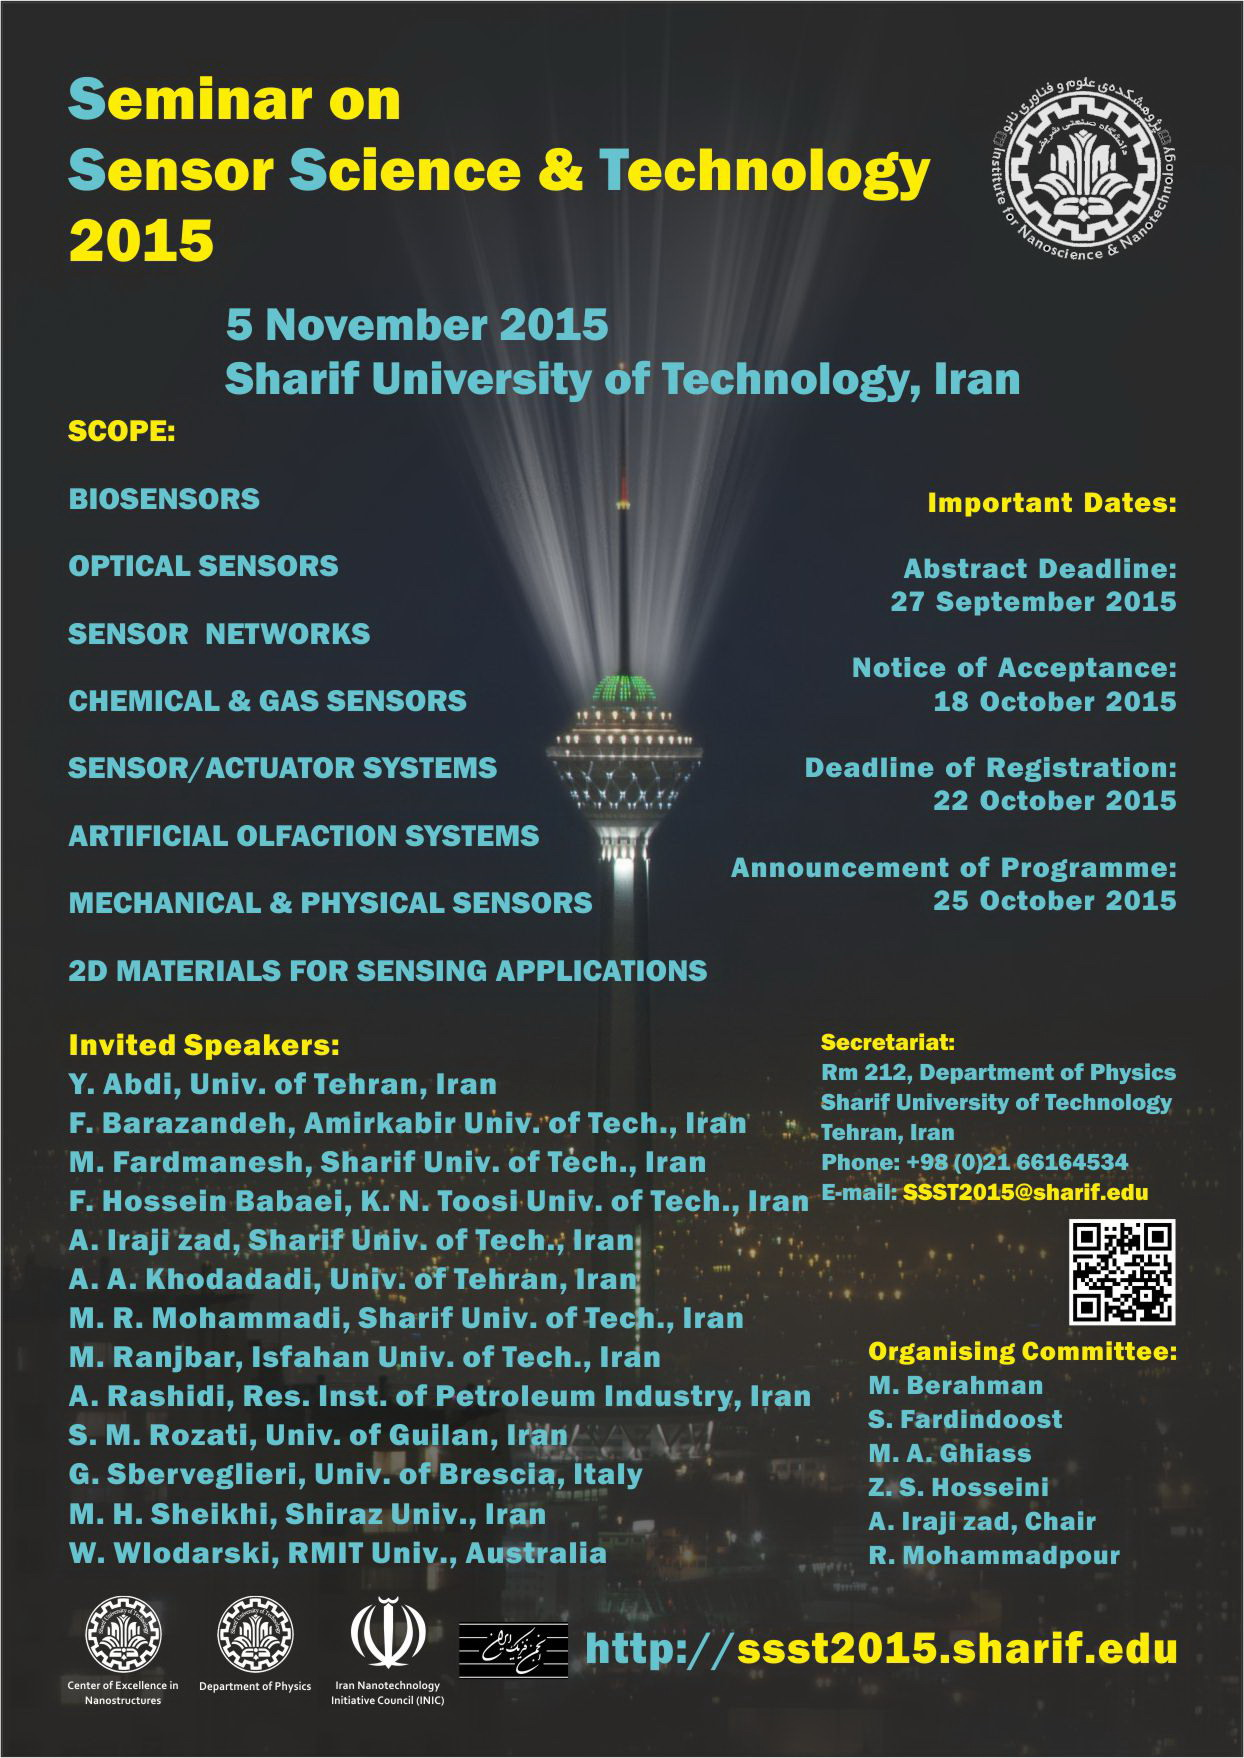 seminar-on-sensor-science-and-technology-2015